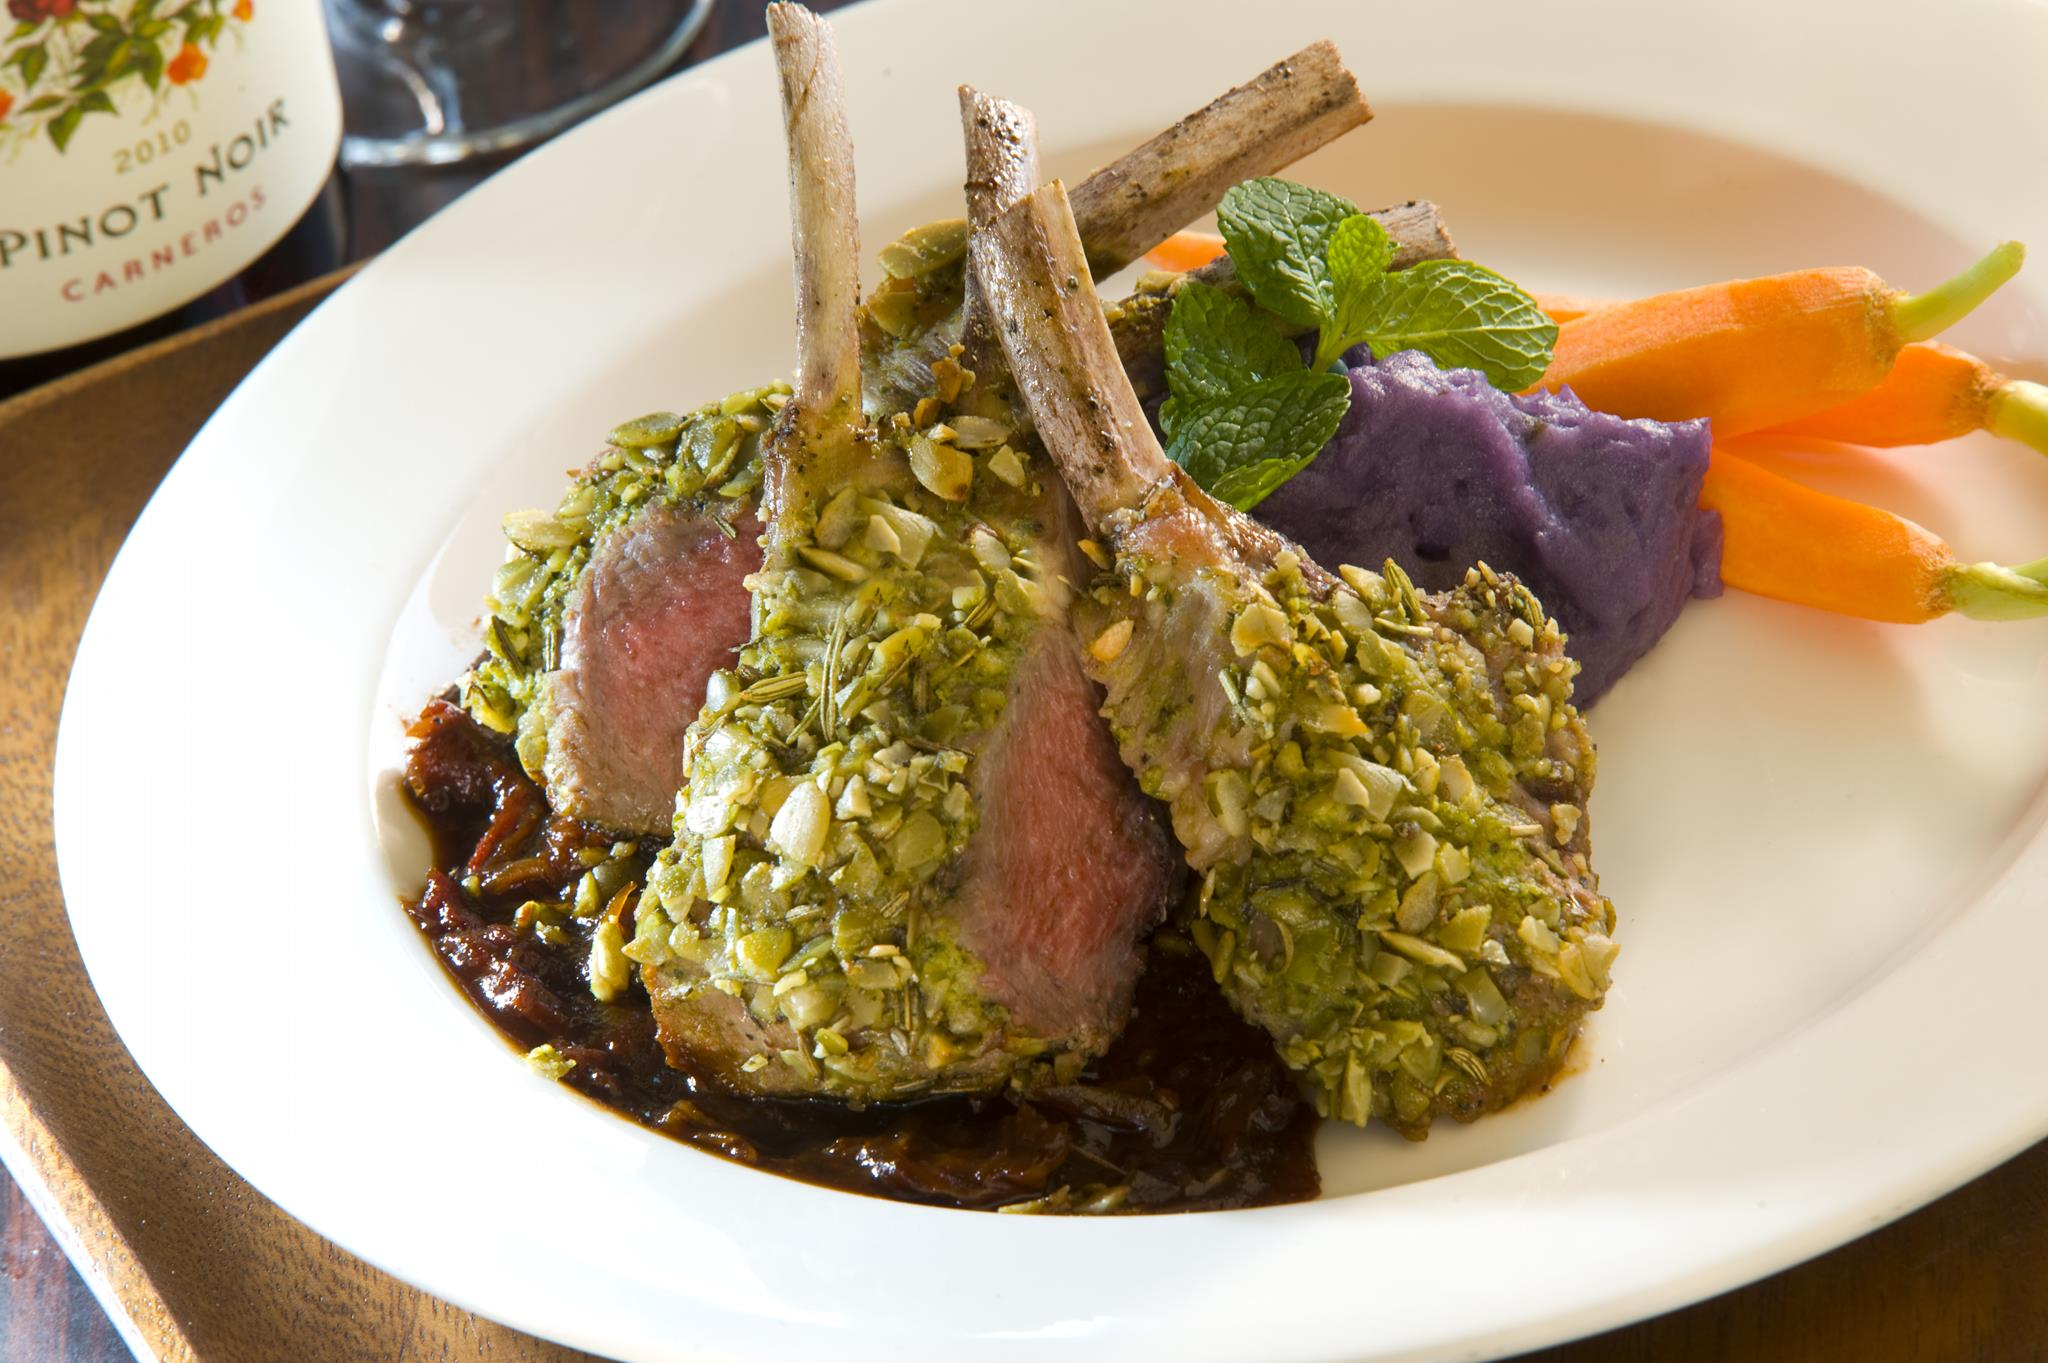 Pepita Crusted Rack of Lamb with Sun-Dried Tomato Cabernet Demi-Glace